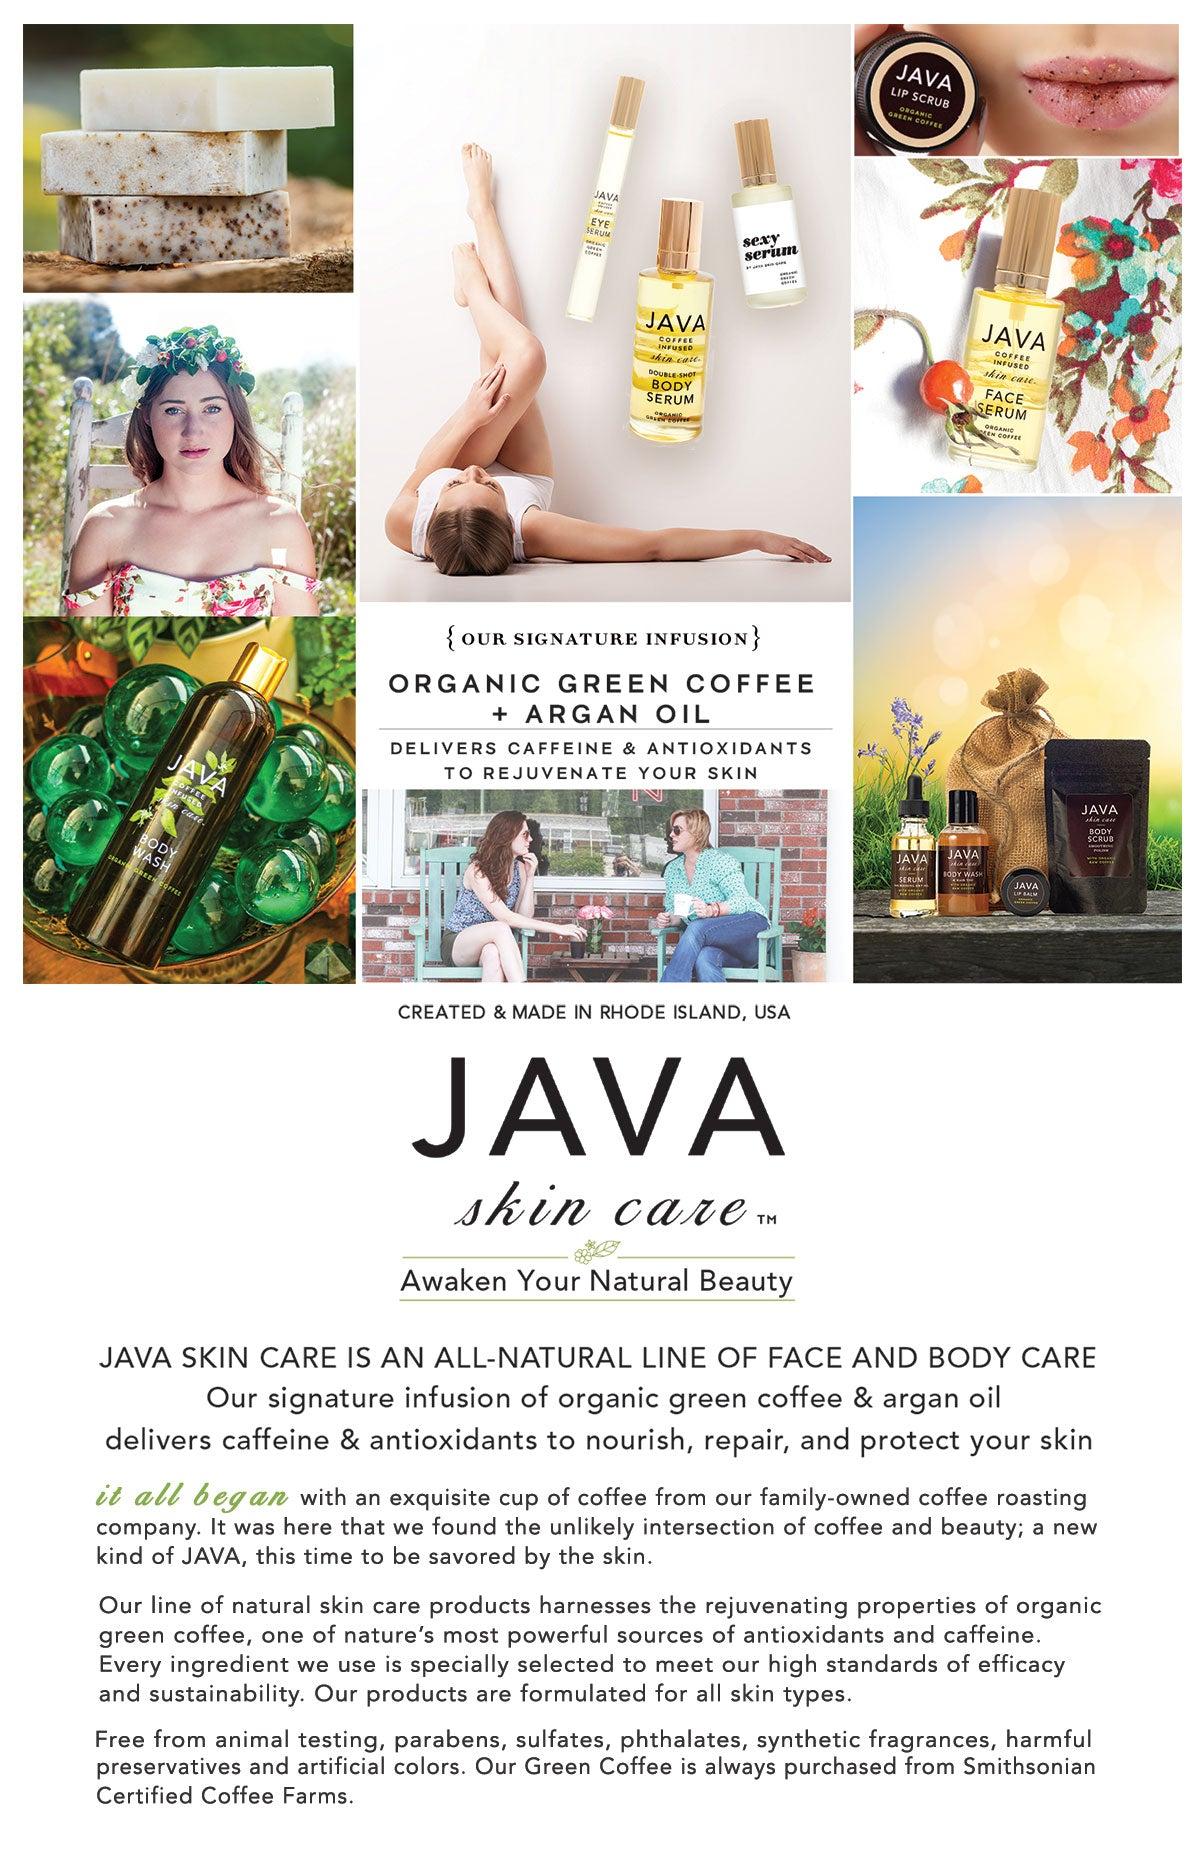 java skin care product guide cover